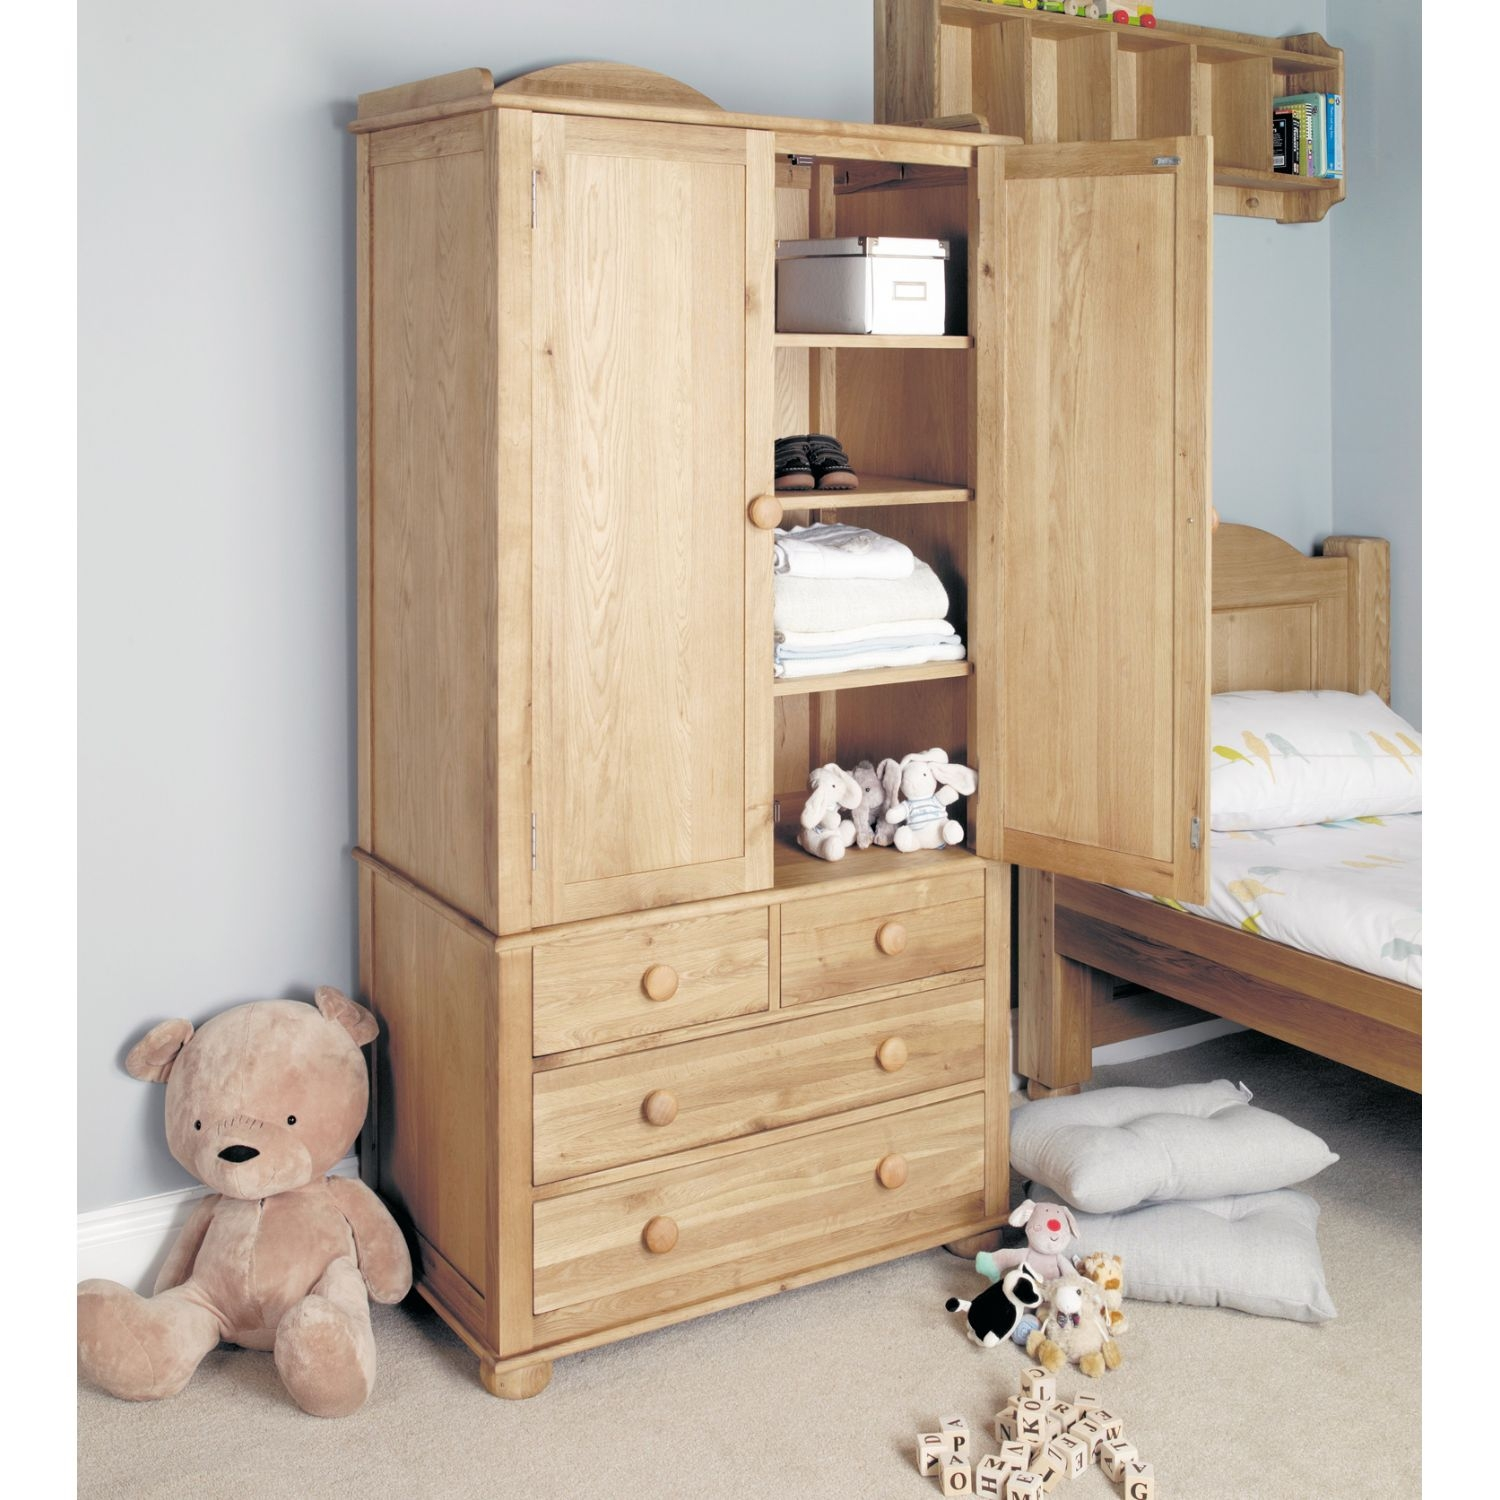 Childrens Wardrobes With Shelves Awesome Interior Inside Wardrobe With Shelves And Drawers (View 3 of 15)